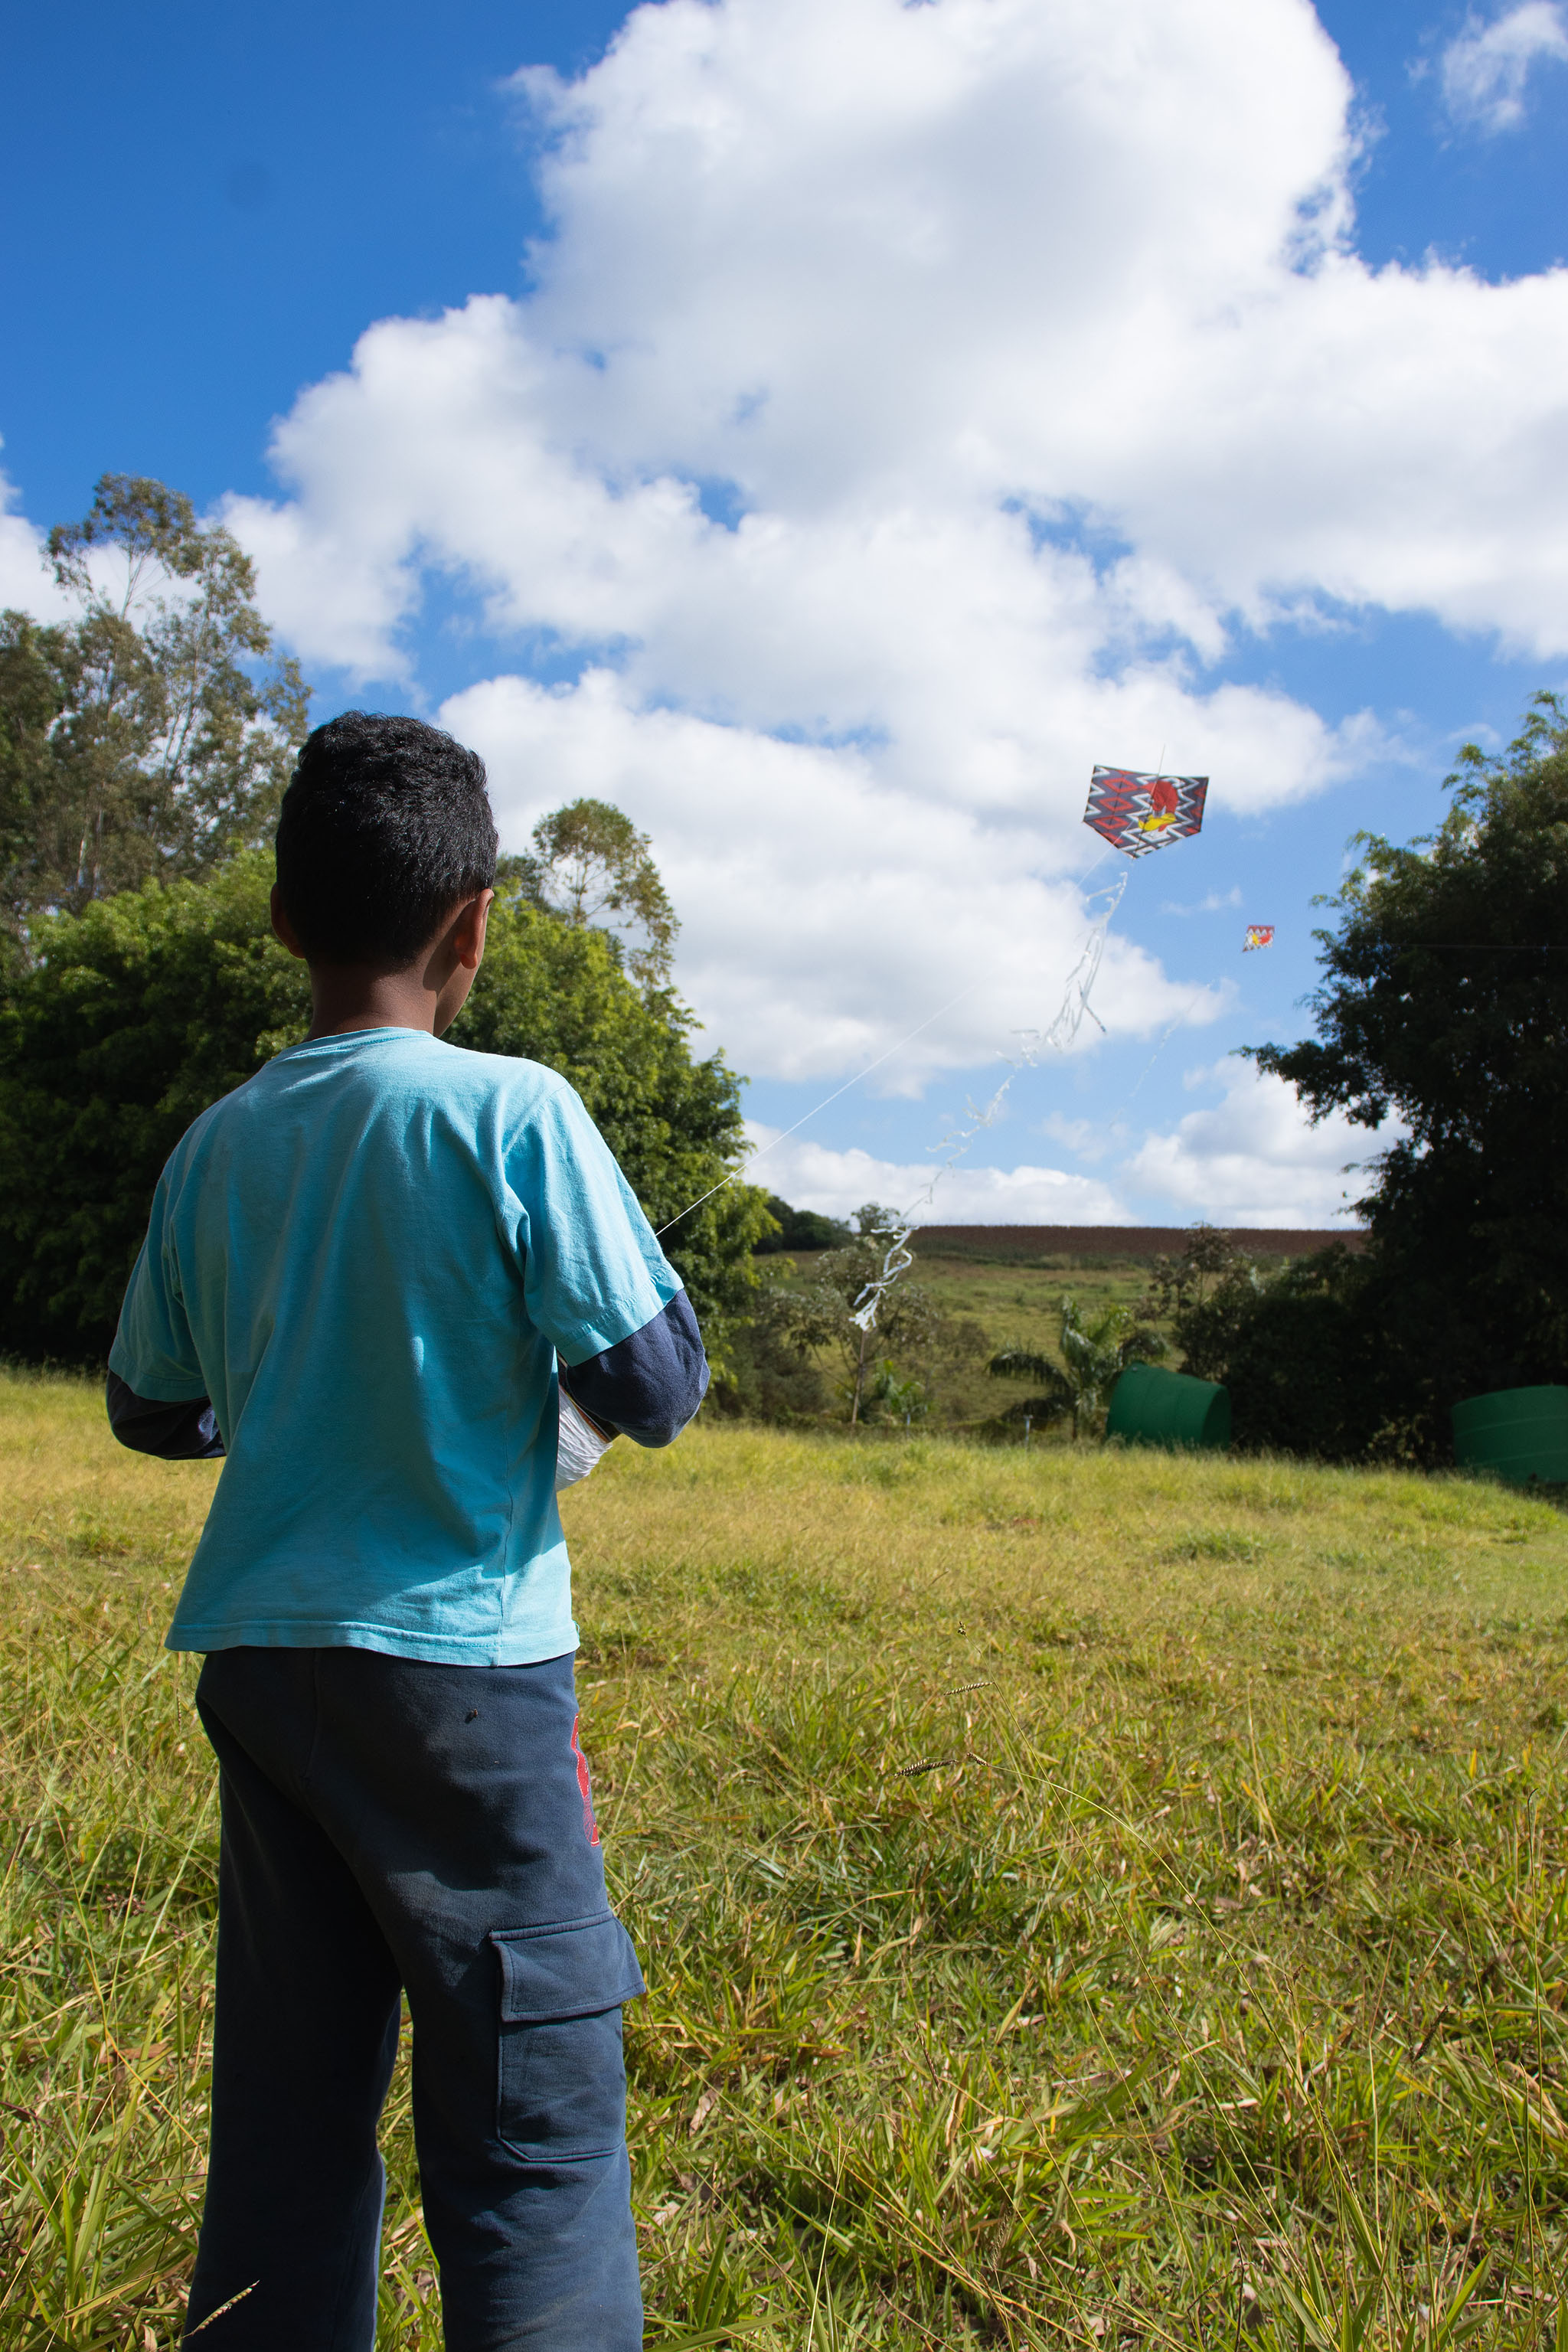 One of the boys flying a homemade kite